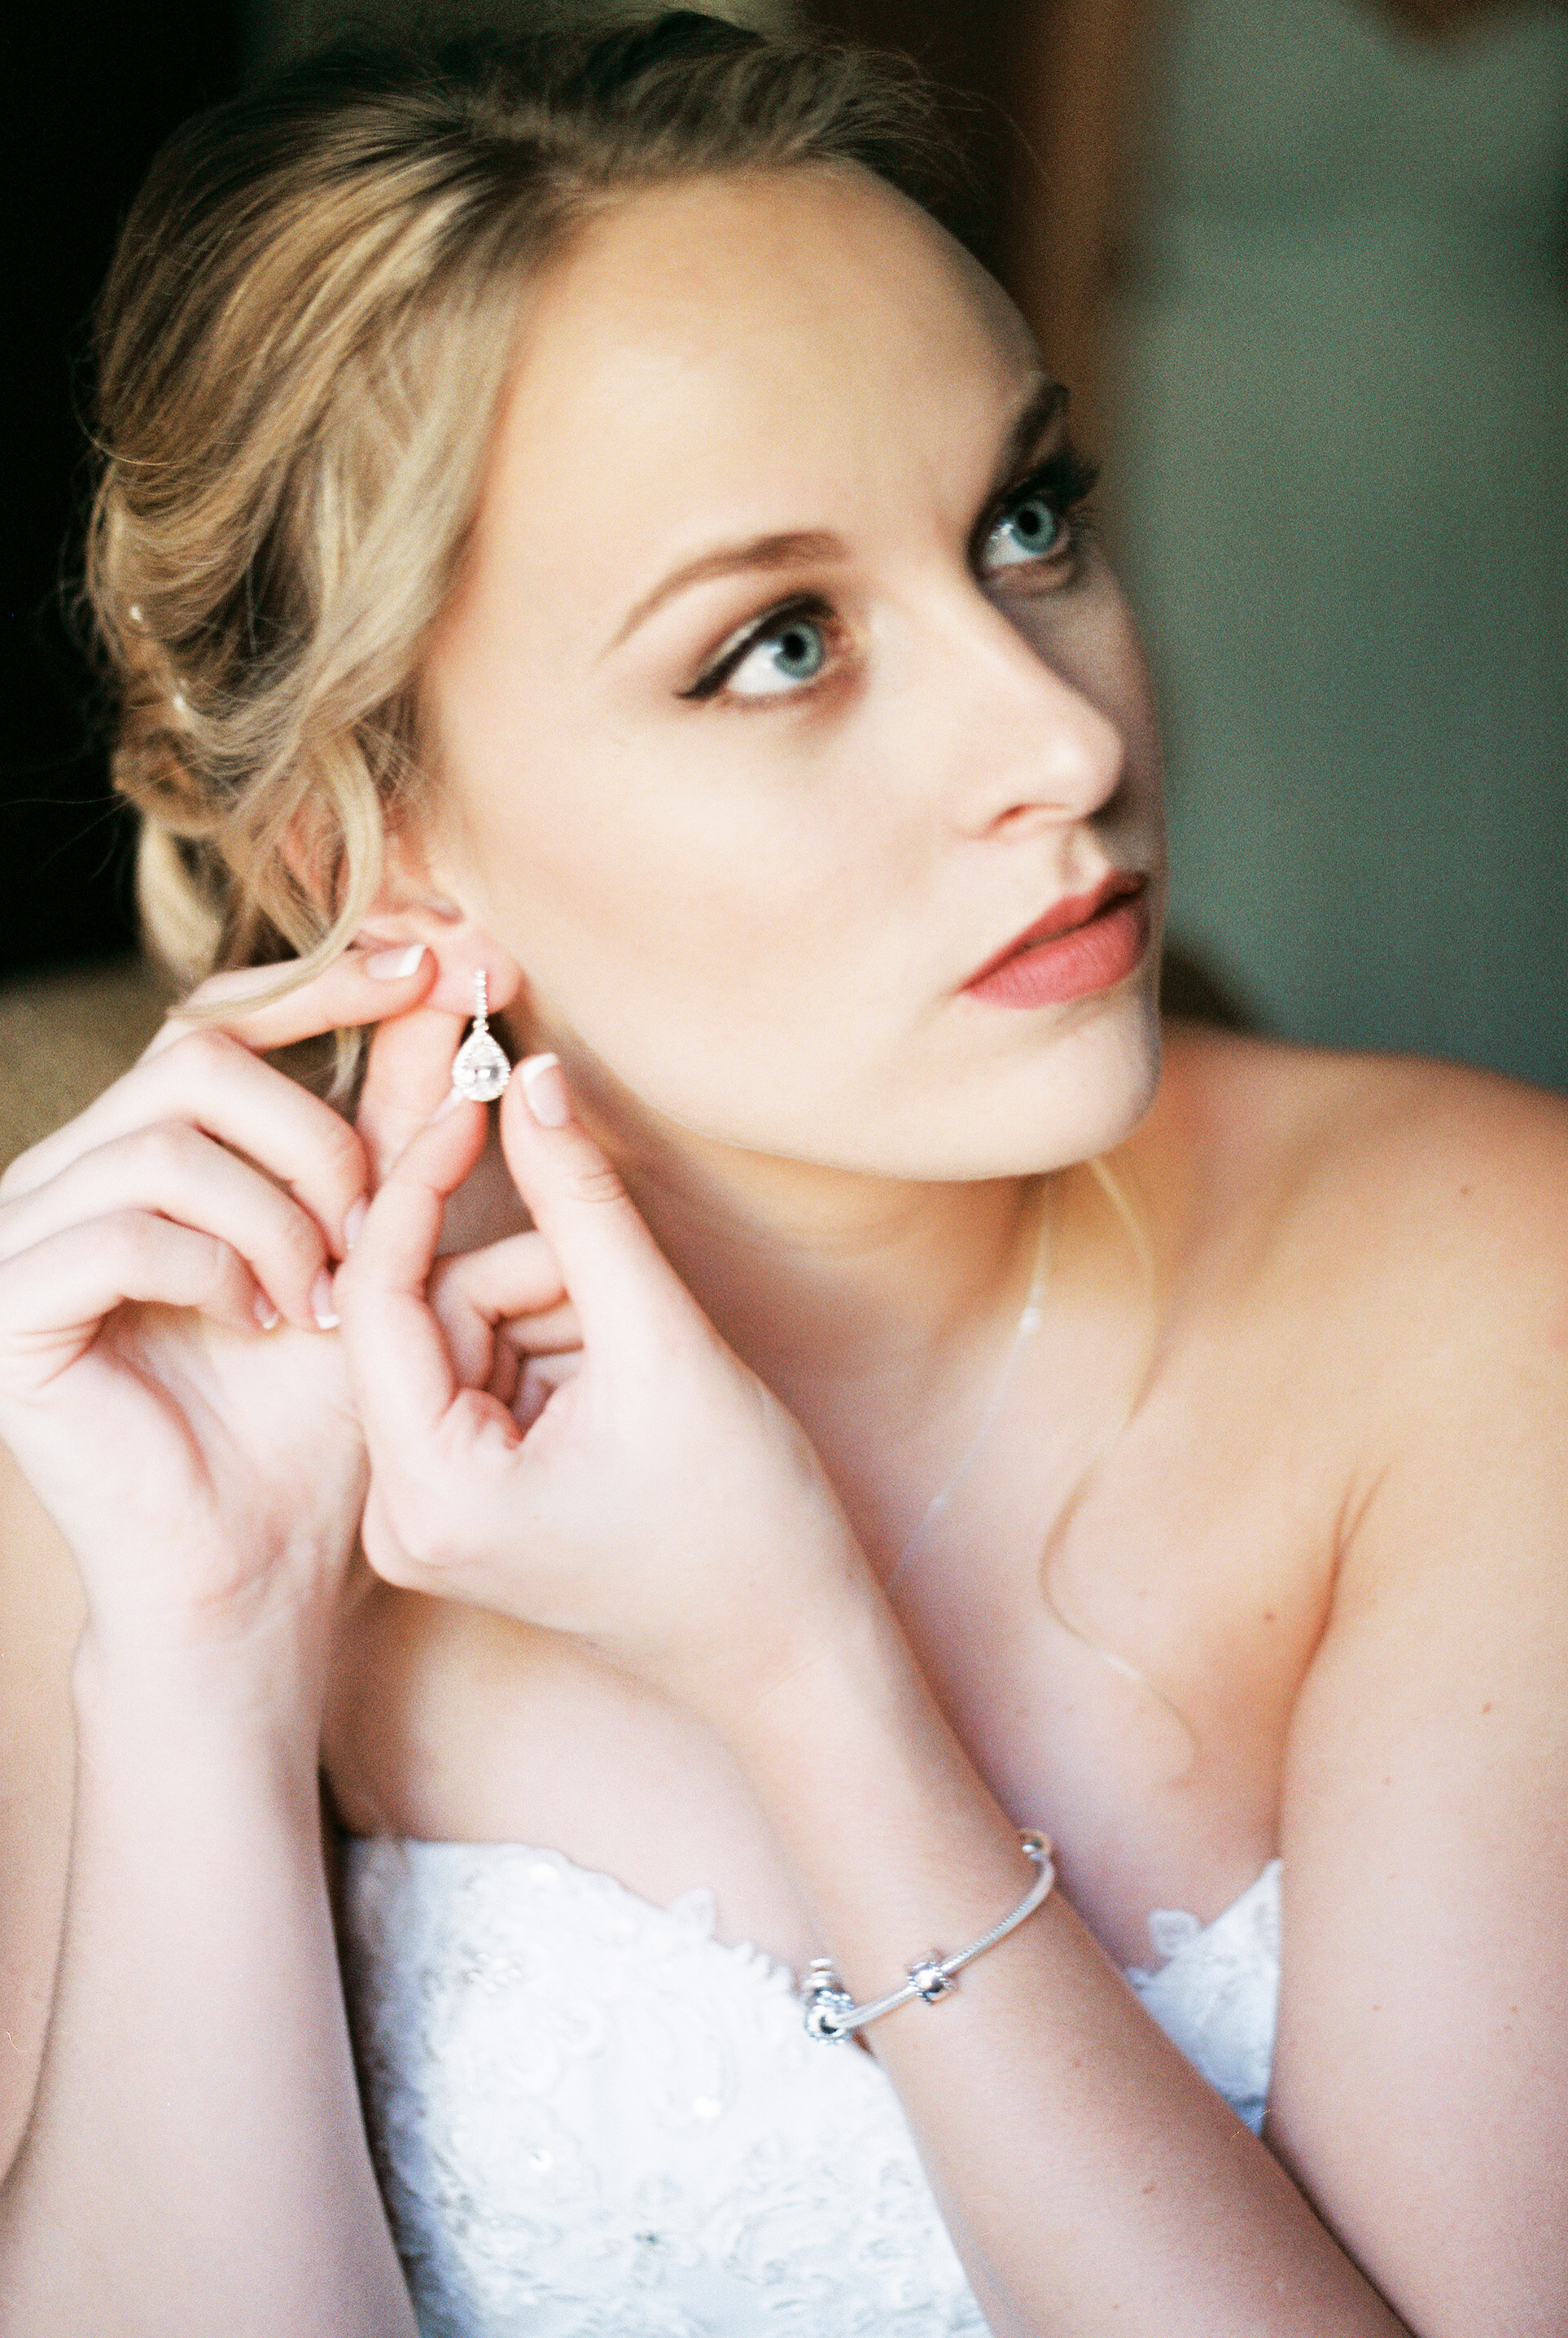 lake-mary-events-center-Florida-wedding-photos-bride-putting-on-earrings-jewelry